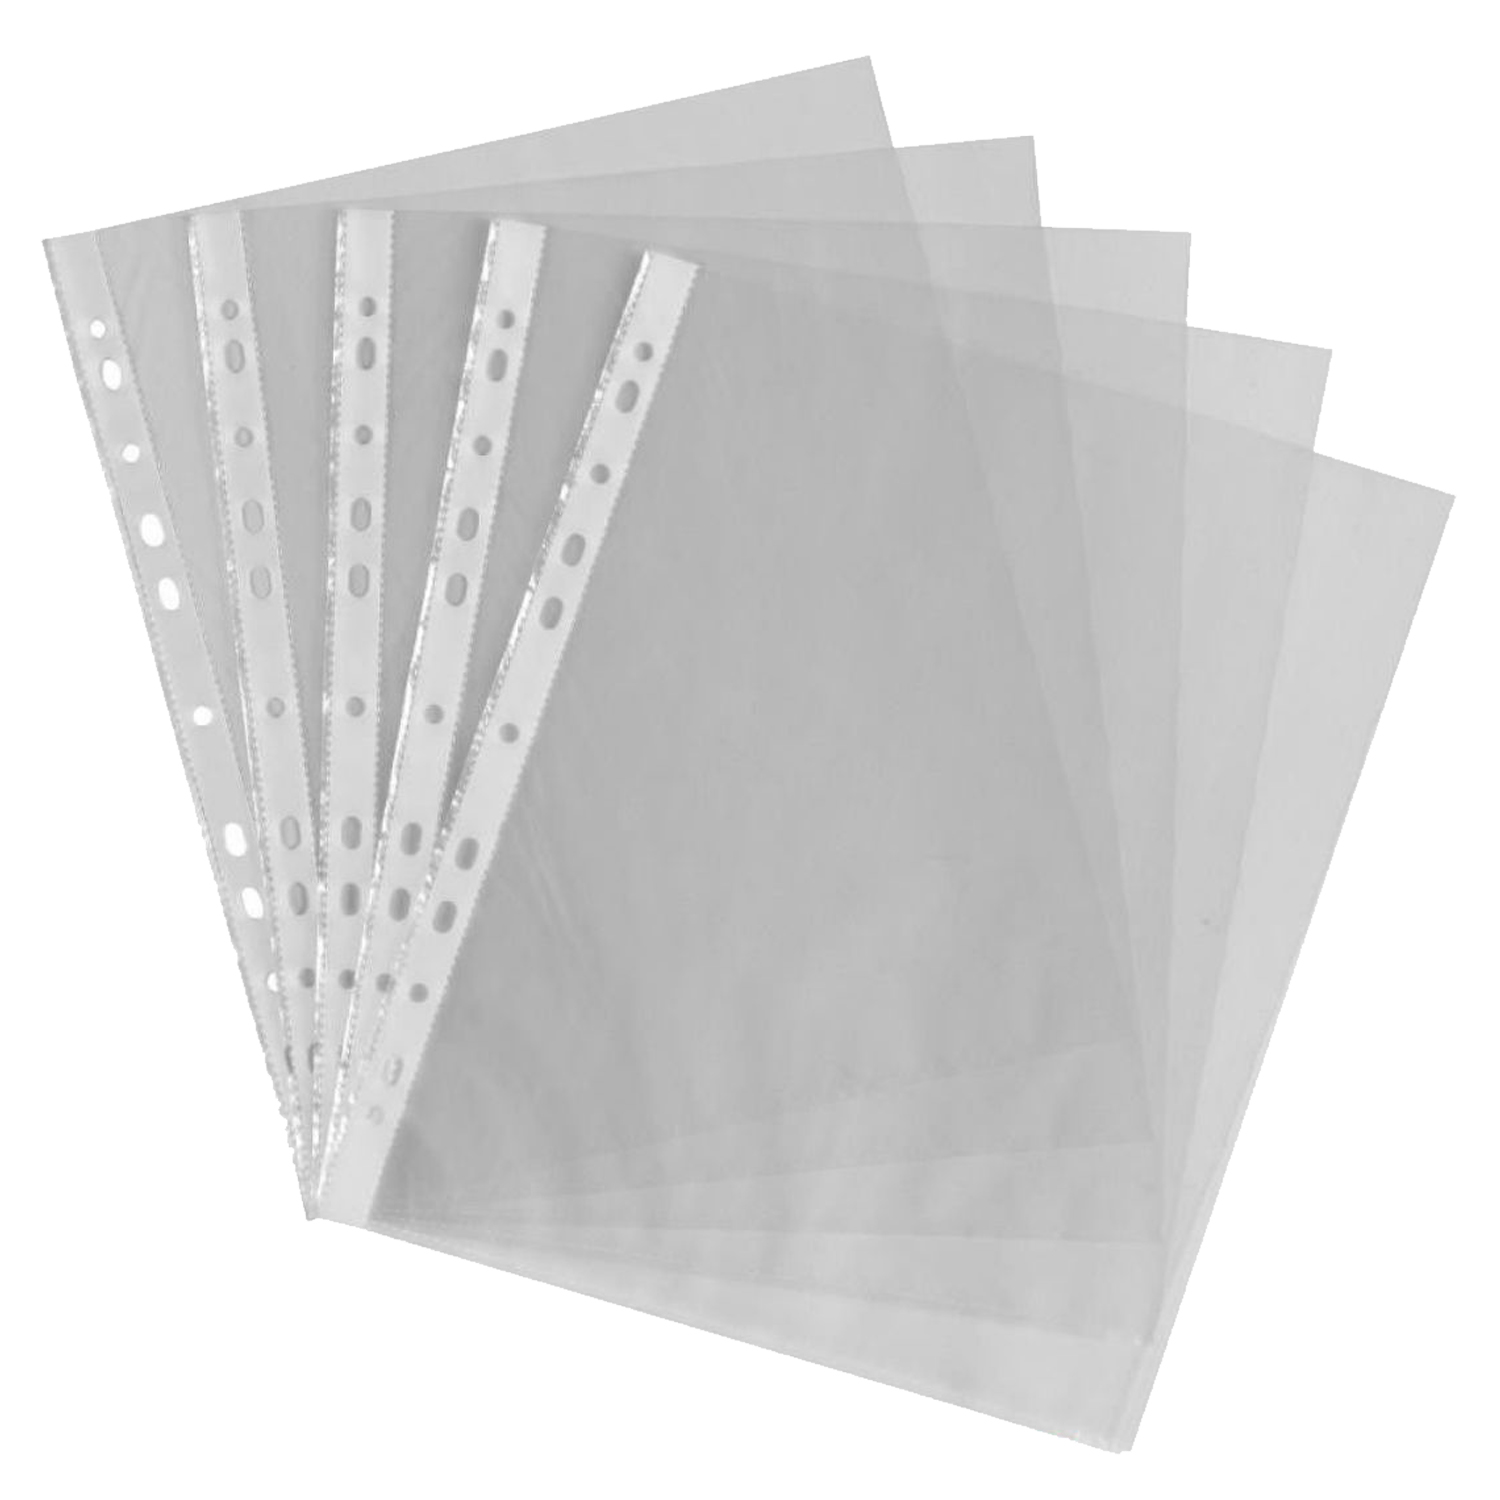 Affordable A4 clear plastic punched pockets / sleeves 200 Pcs 11 hole A4 File bagAffordable A4 clear plastic punched pockets / sleeves 200 Pcs 11 hole A4 File bag